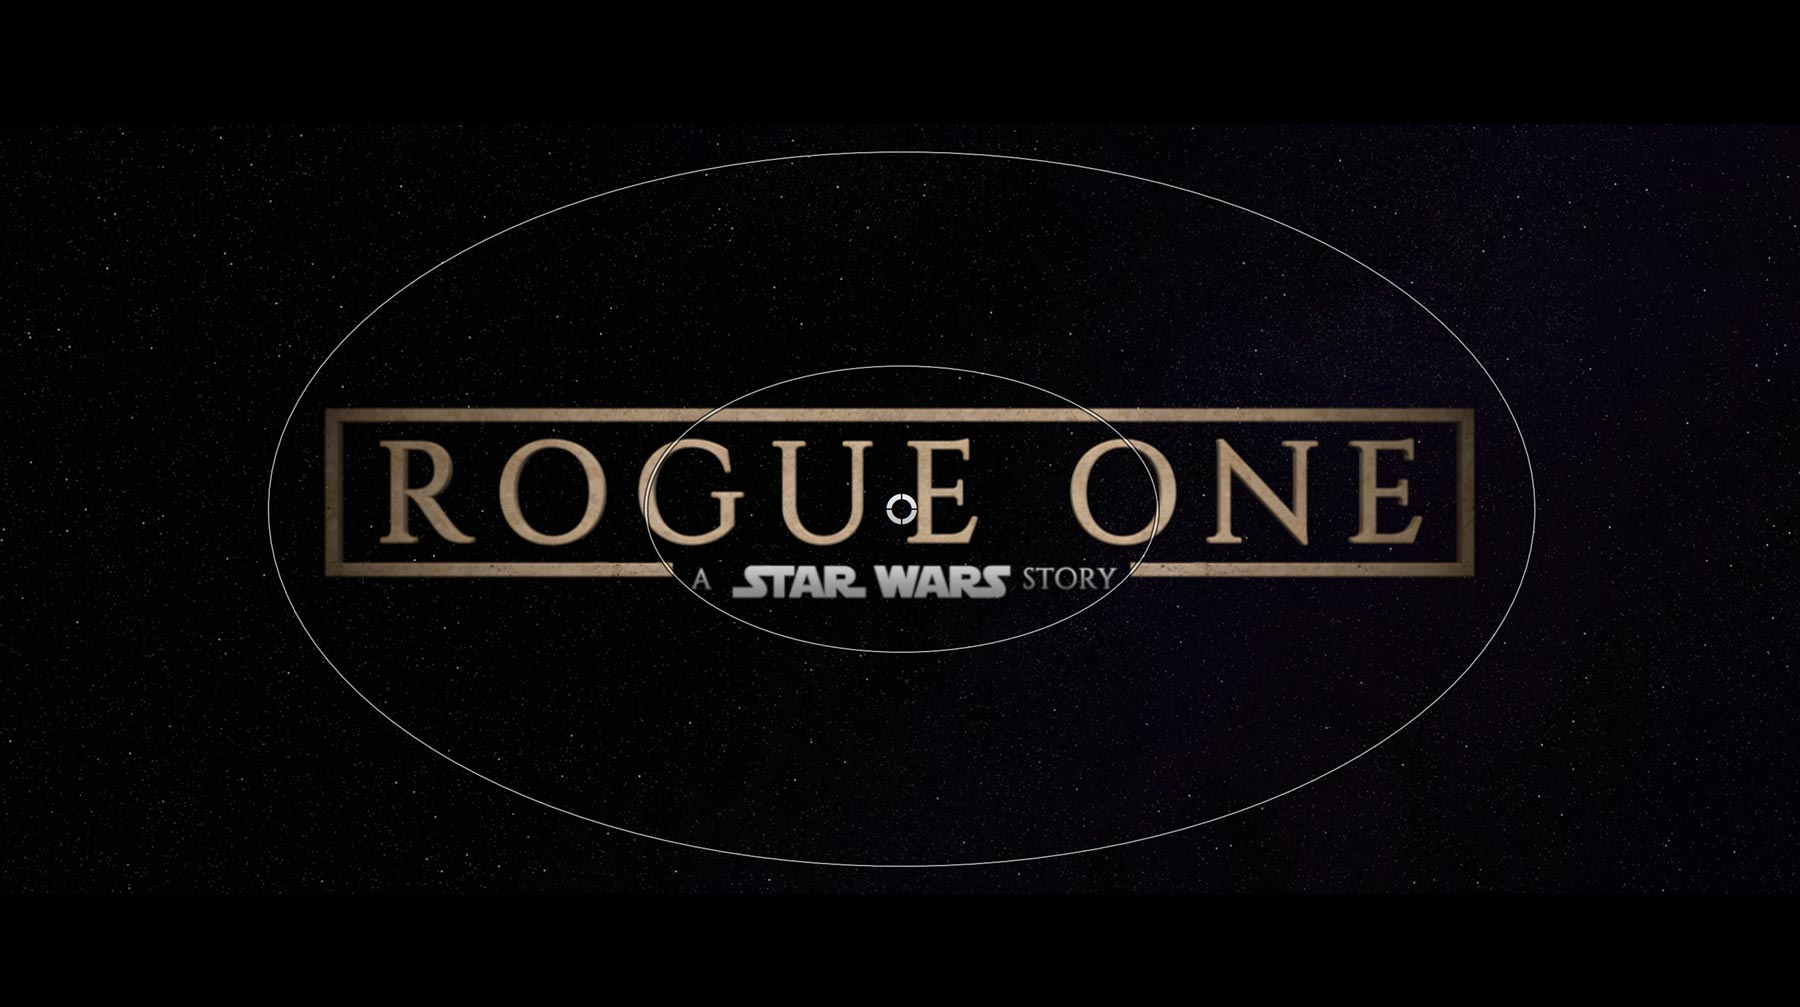 Recreating The Rogue One Movie Title In Final Cut Pro X